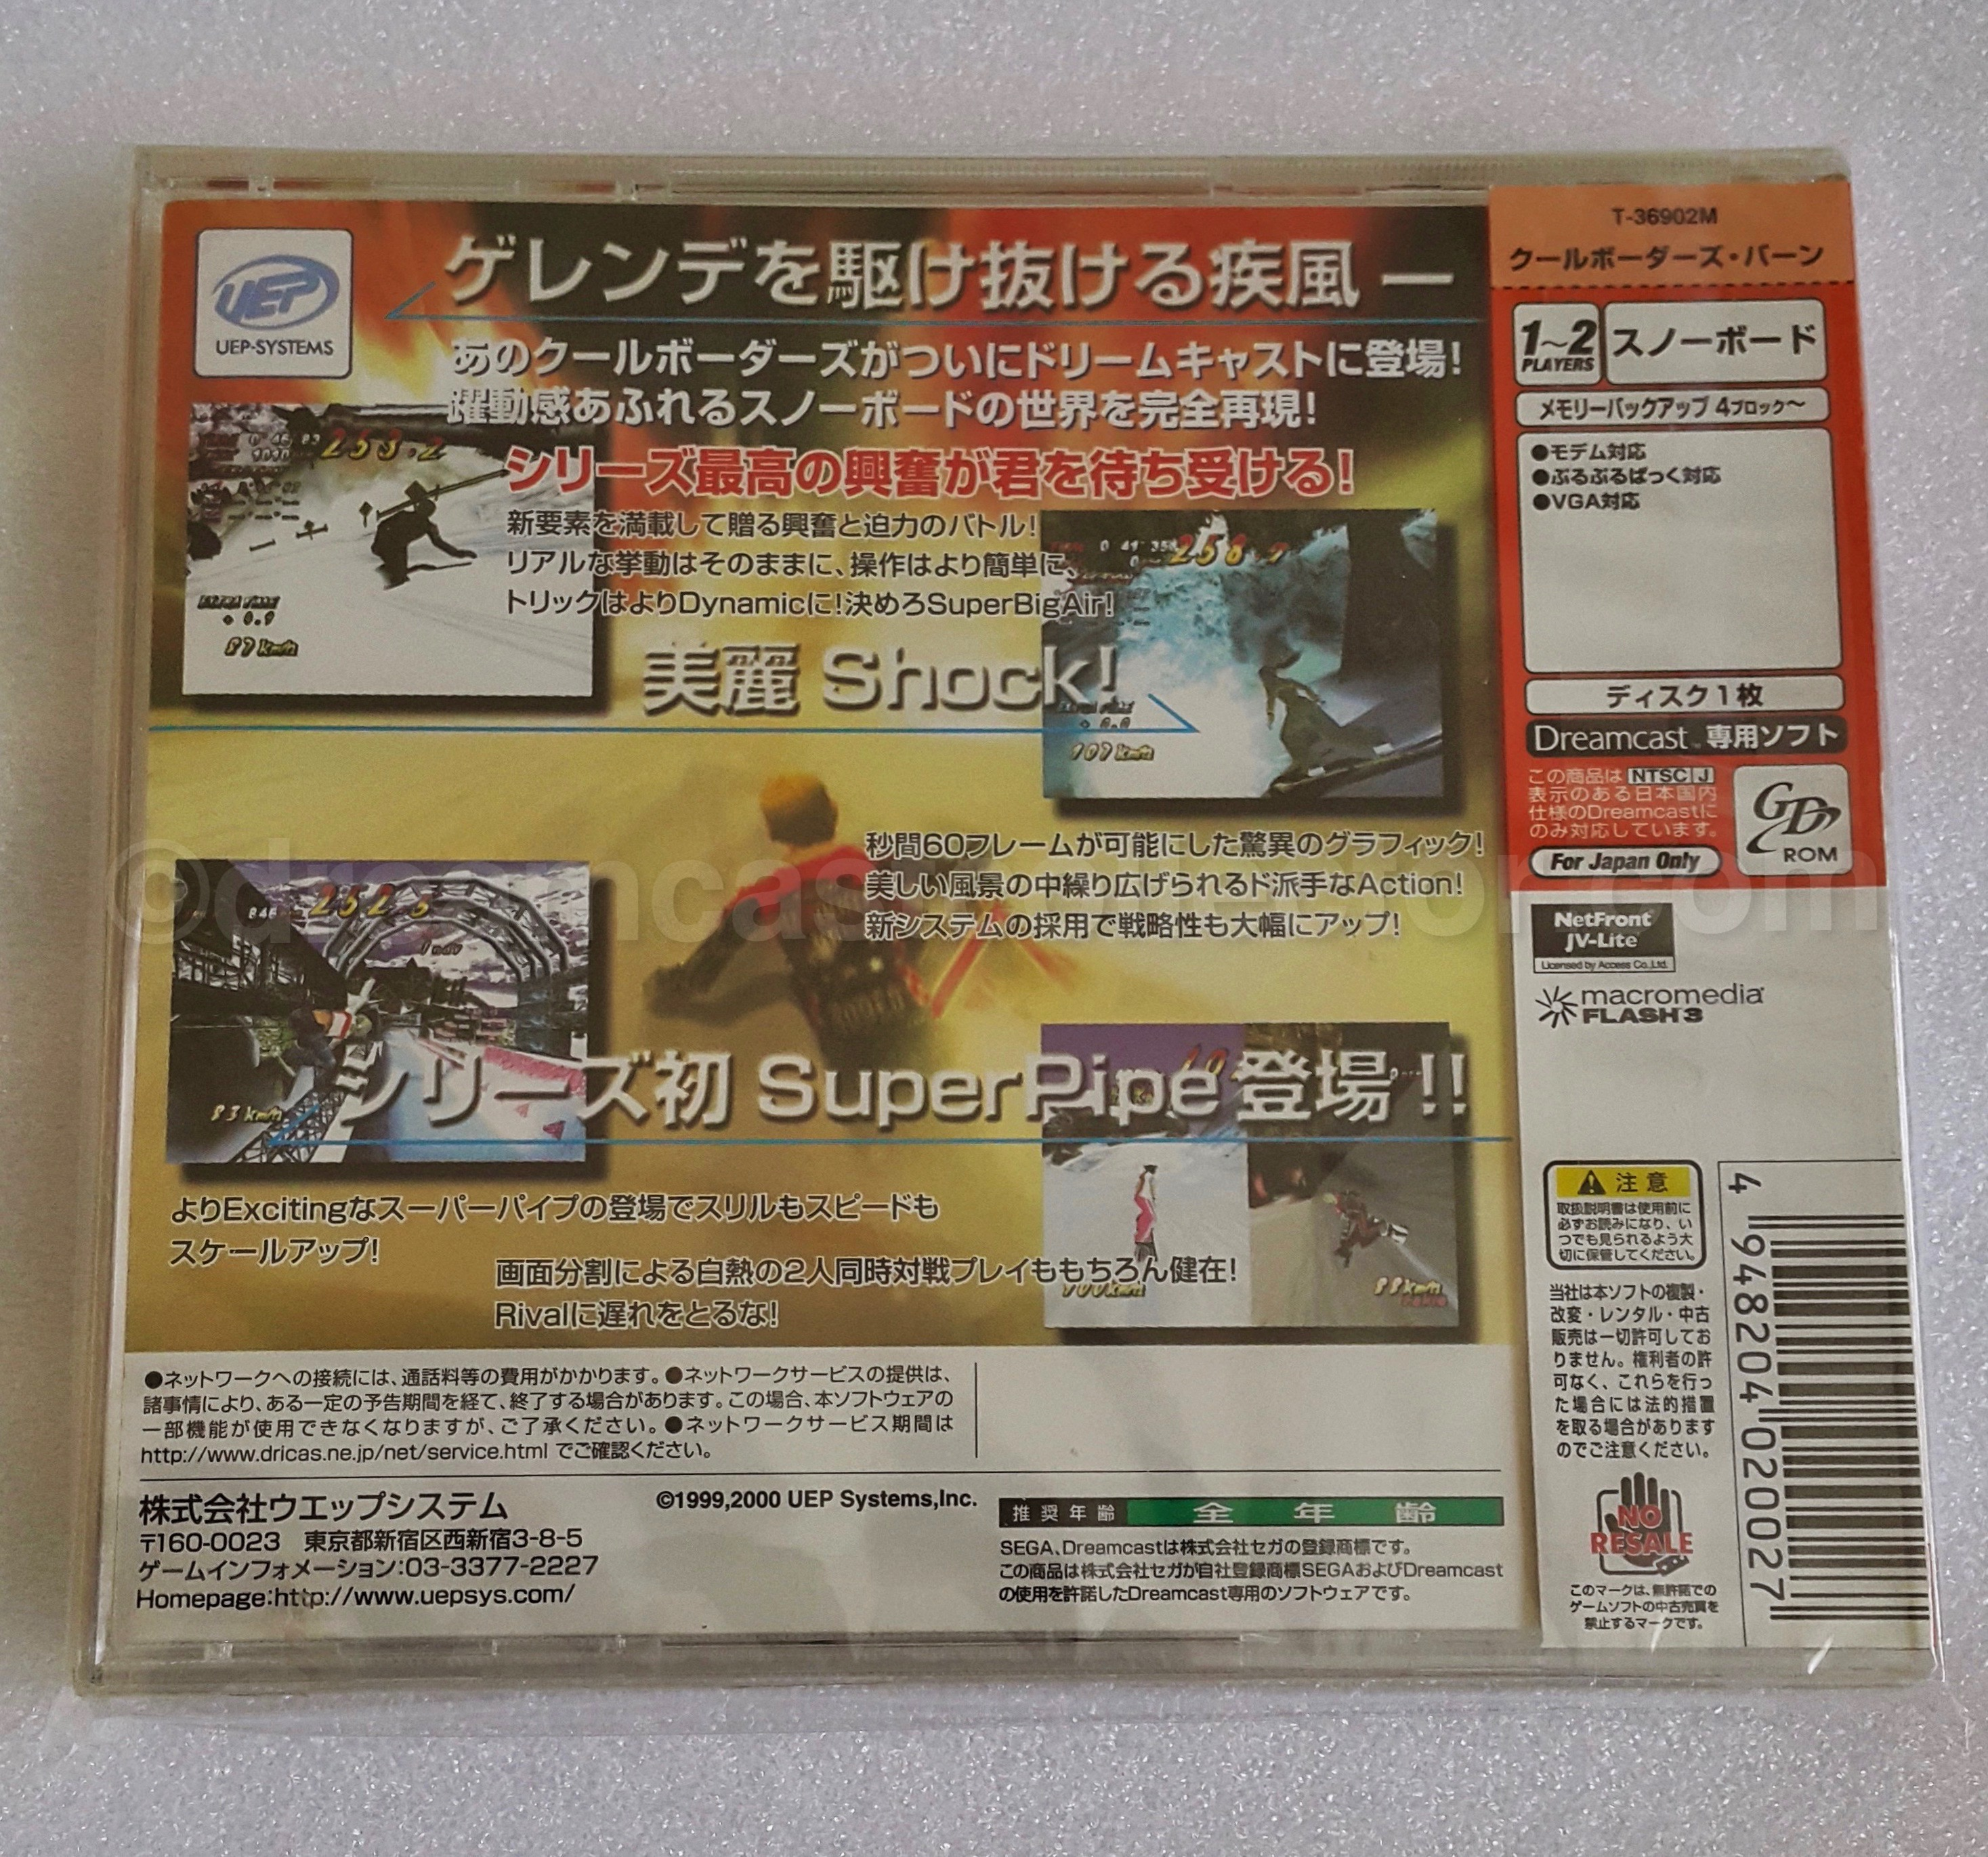 UEP-Systems, Inc | Japanese Dreamcast Collector